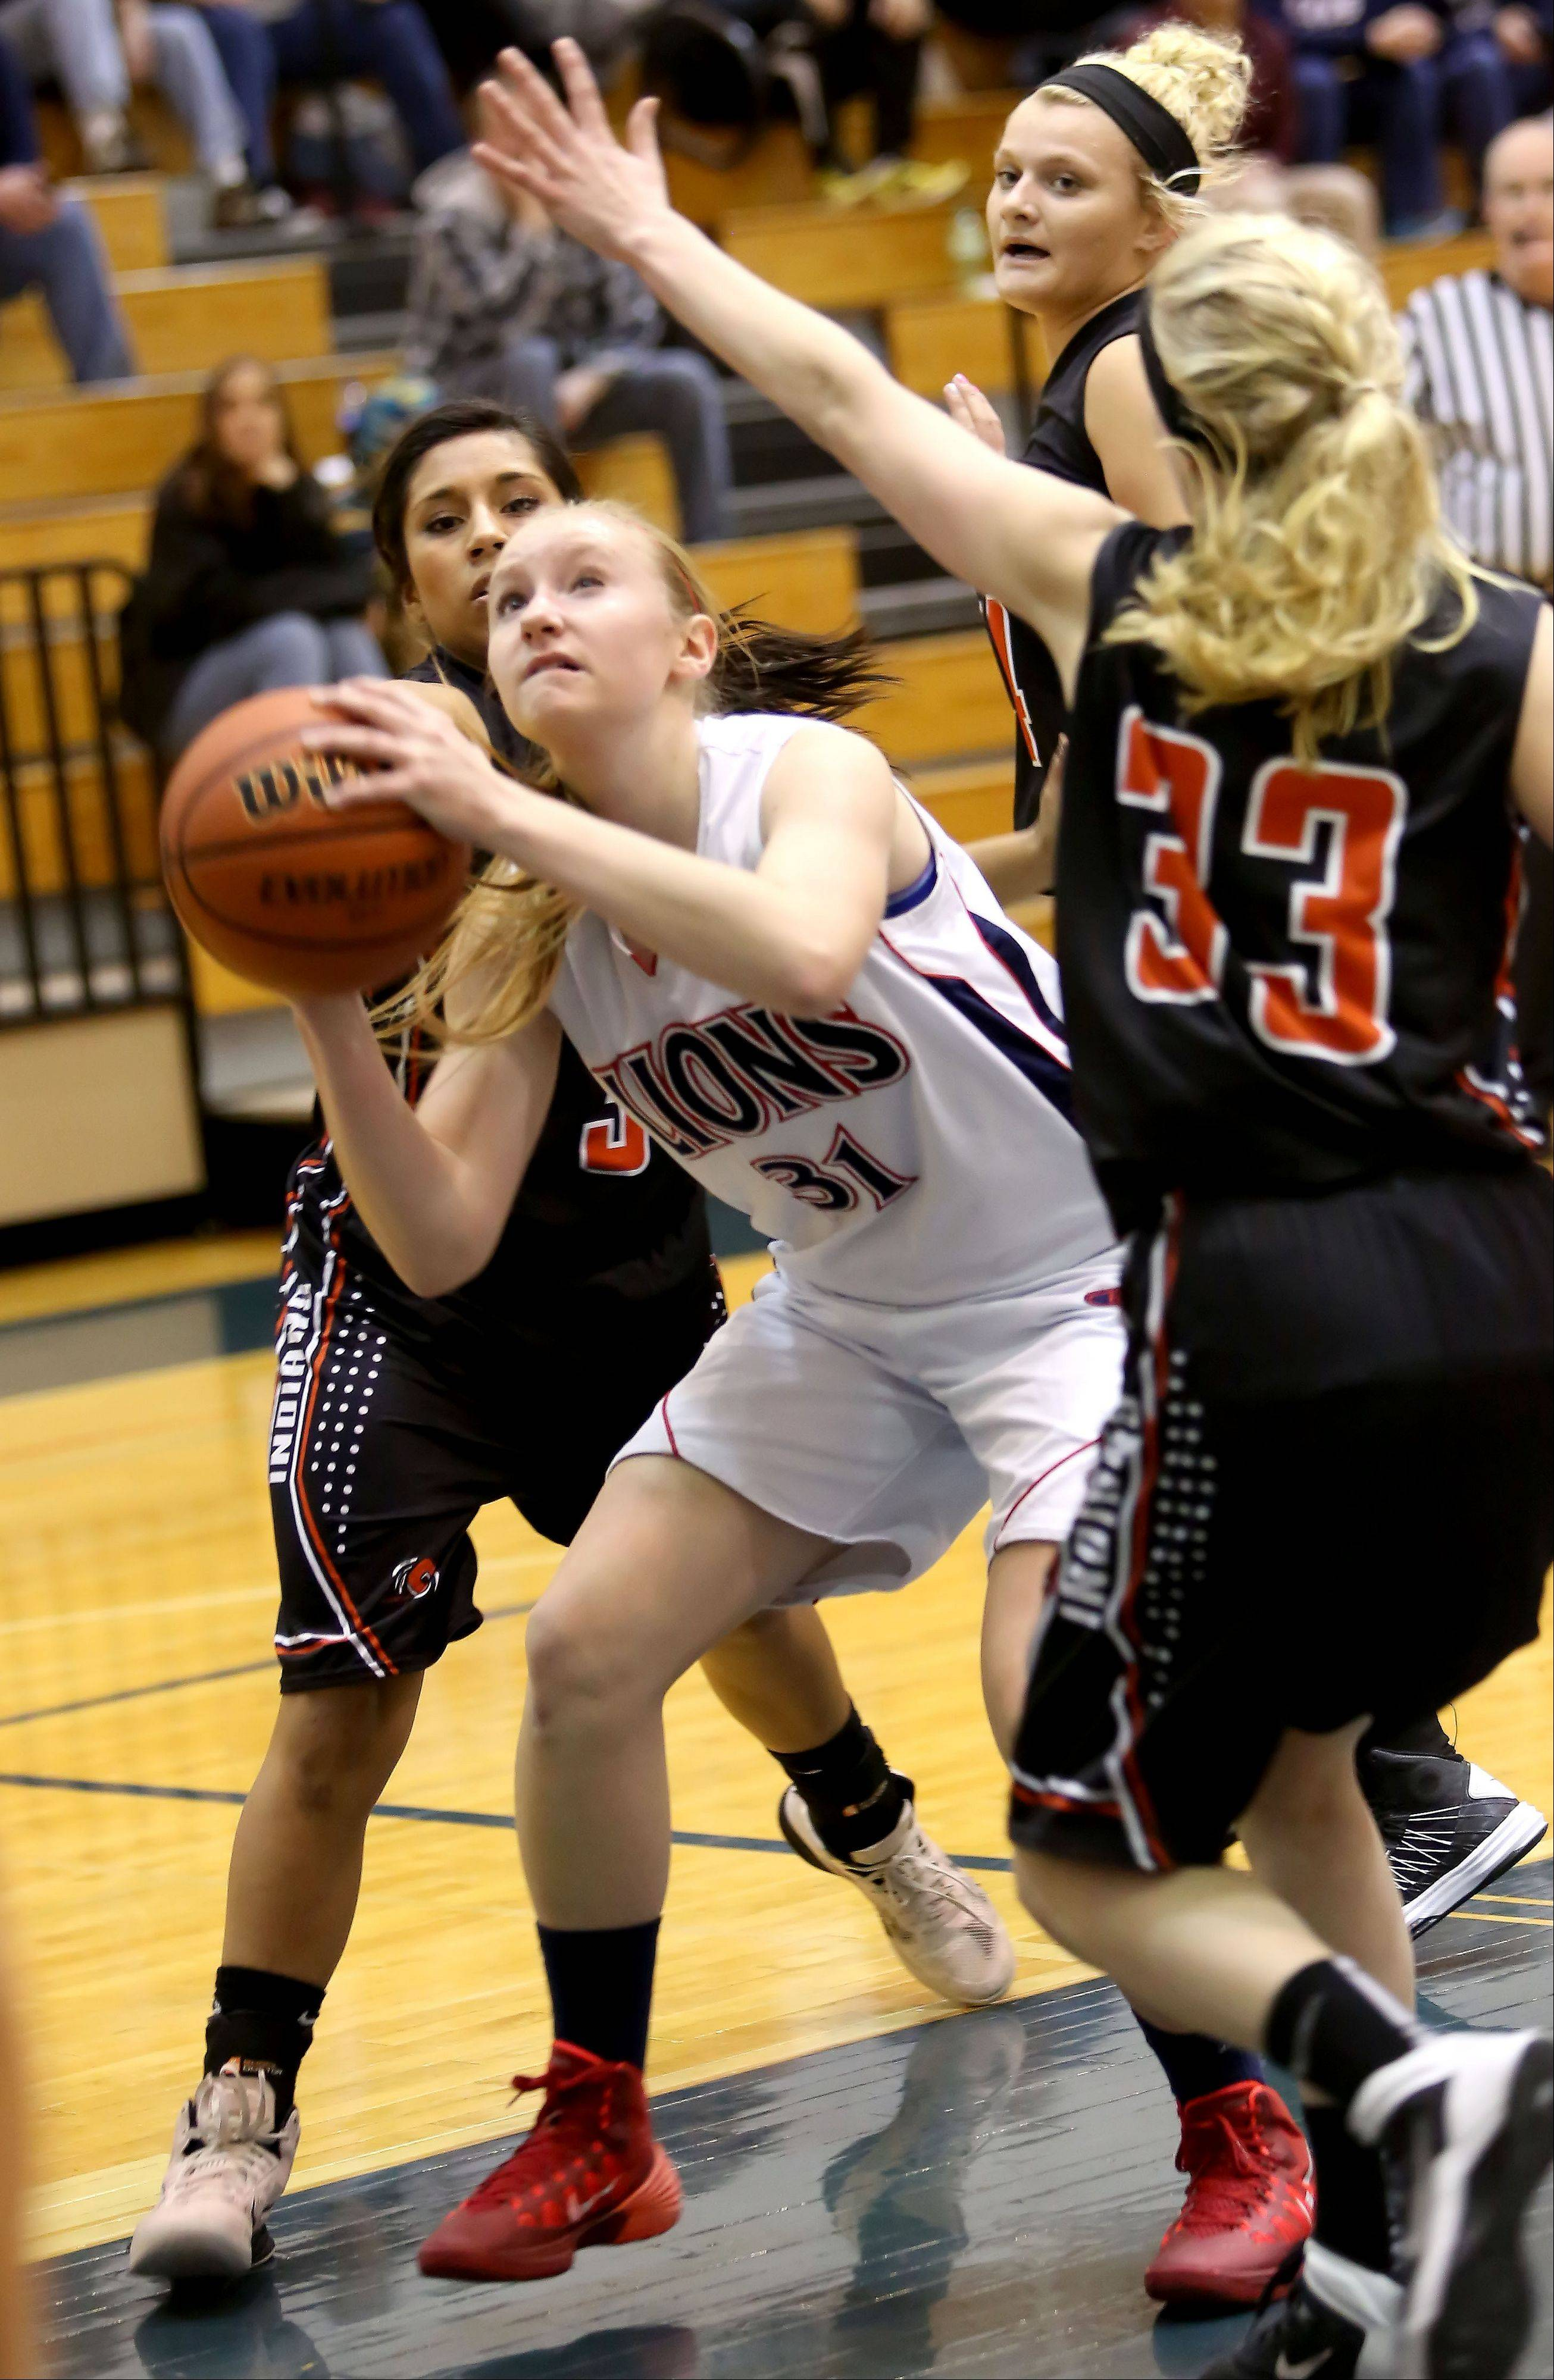 Lisle�s Sarah Mogensen looks for room to shoot in action against Sandwich during girls basketball on Monday.